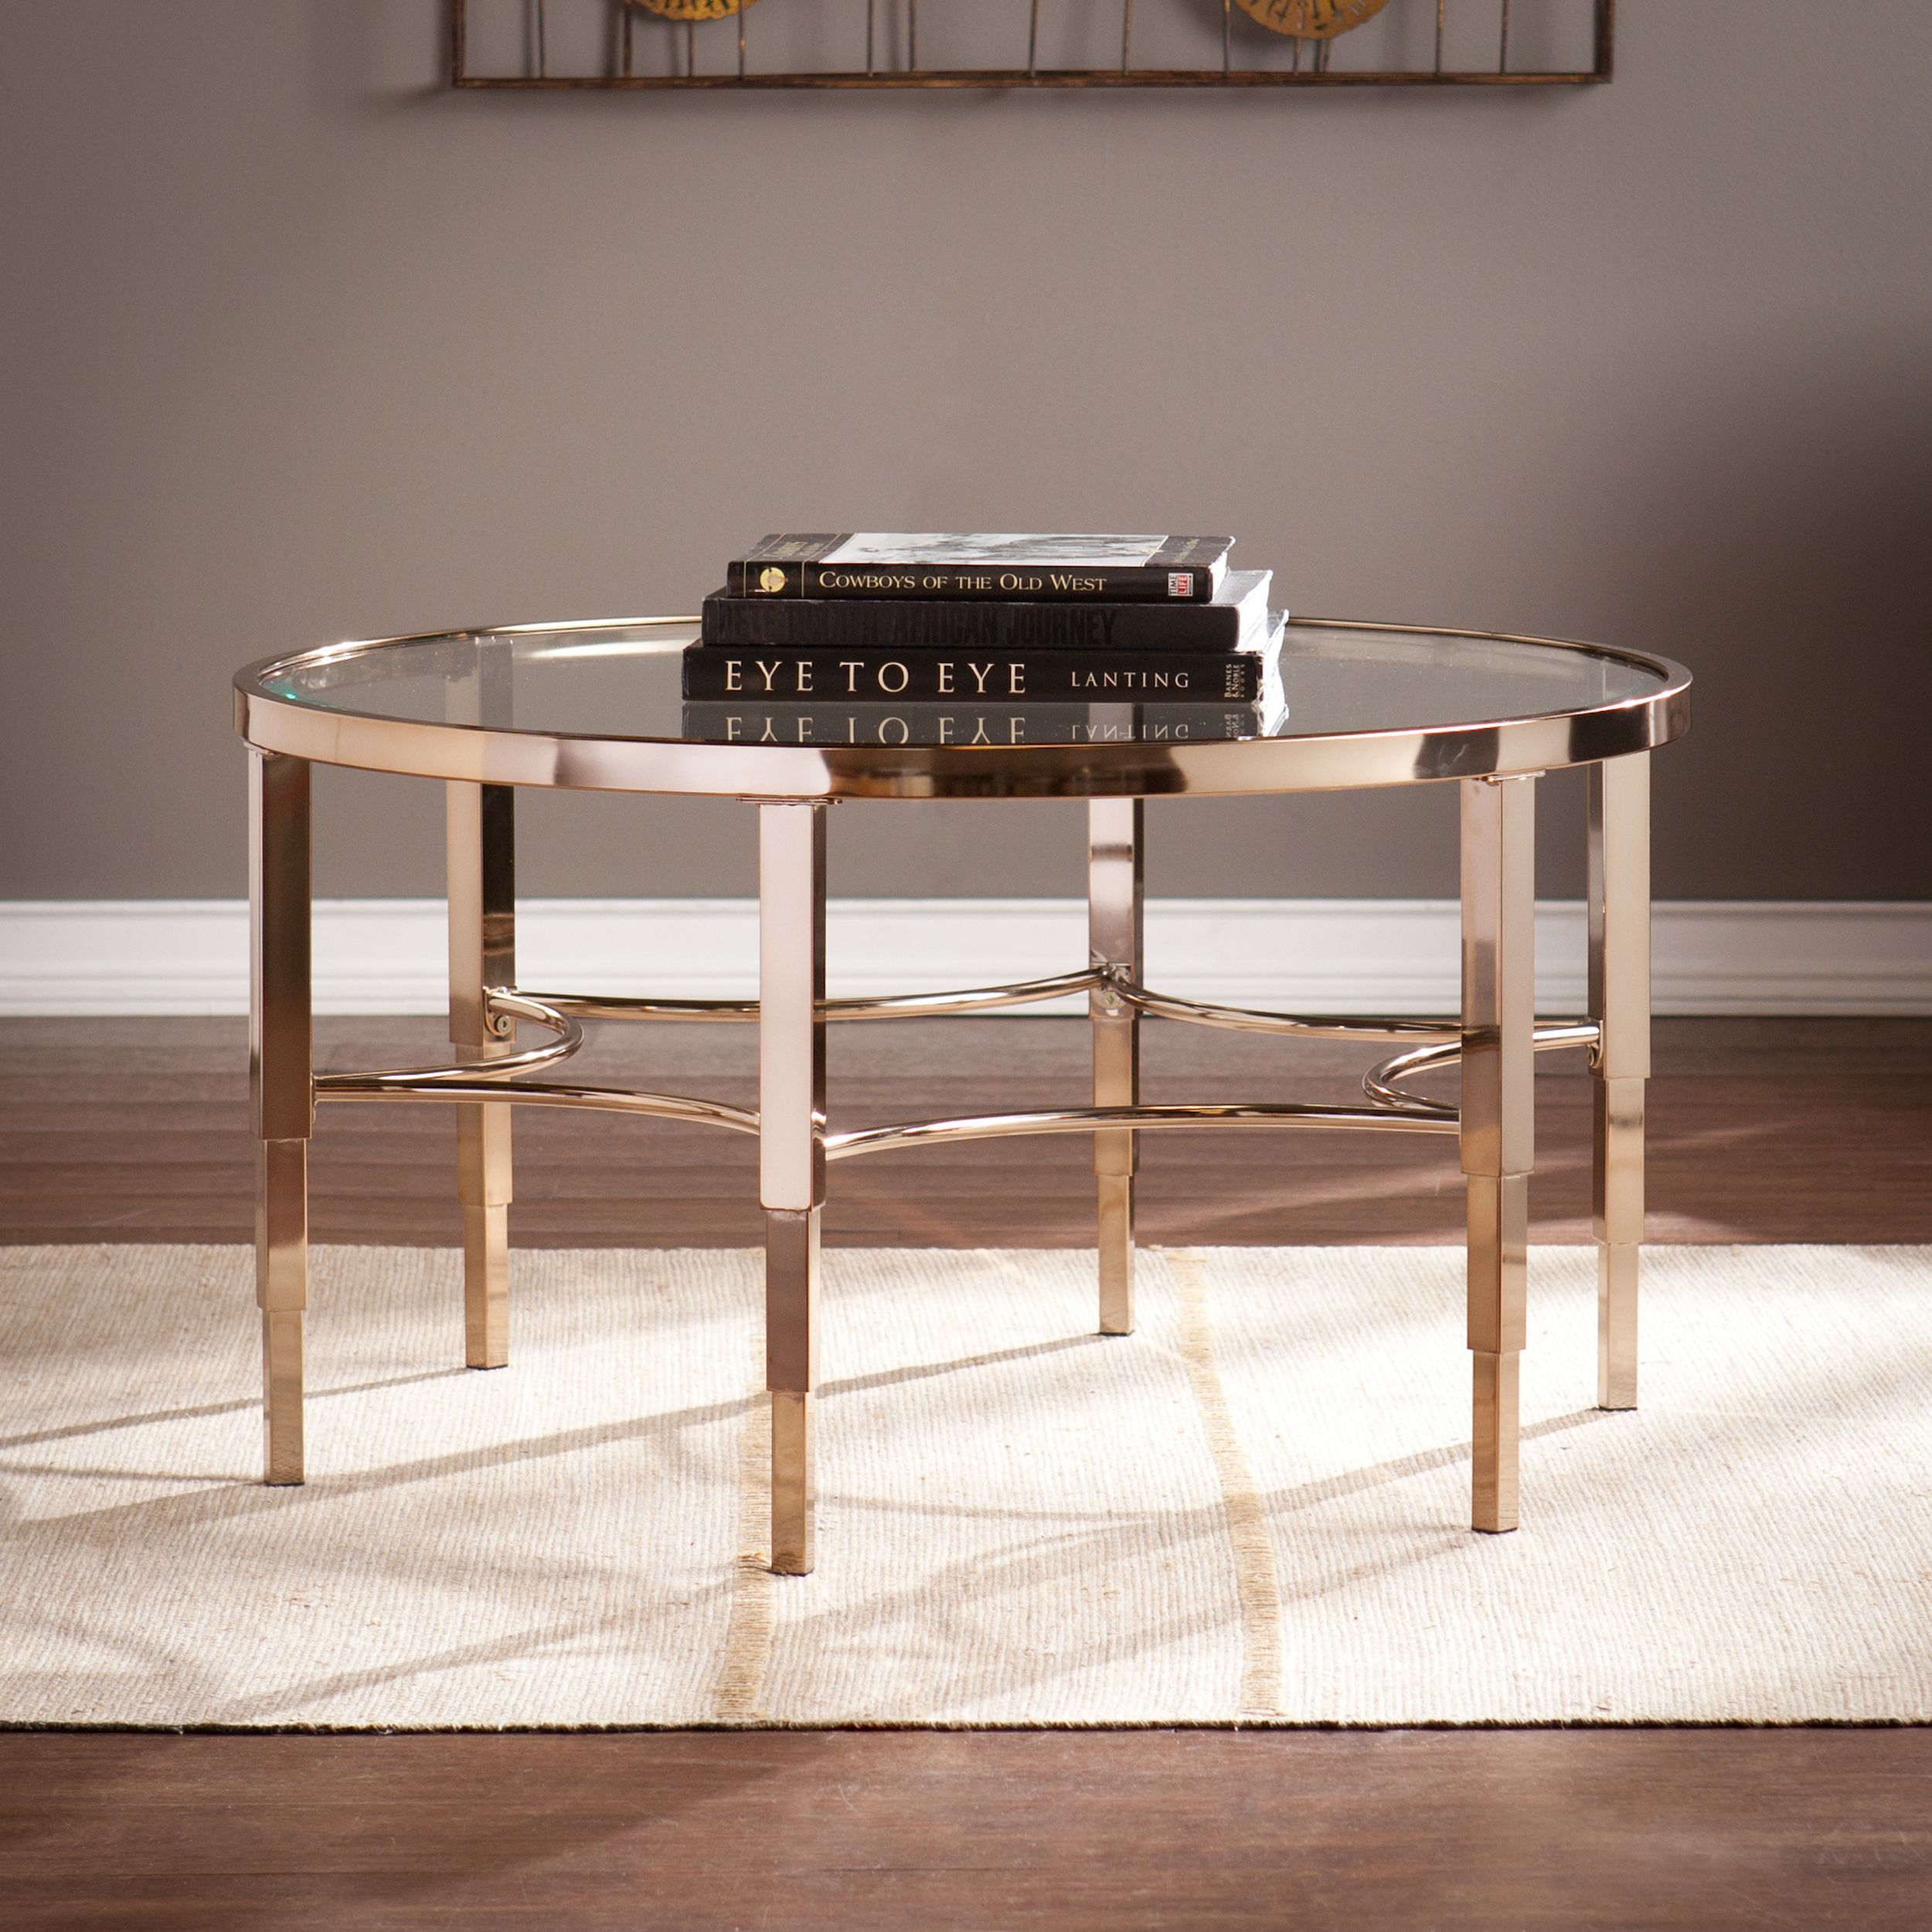 This glamorous, high-shine coffee/ cocktail table evokes New York style with its art deco spindles and tapered legs. A metallic gold frame pairs with a sleek tempered glass tabletop to display art, books, or vases full of flowers.